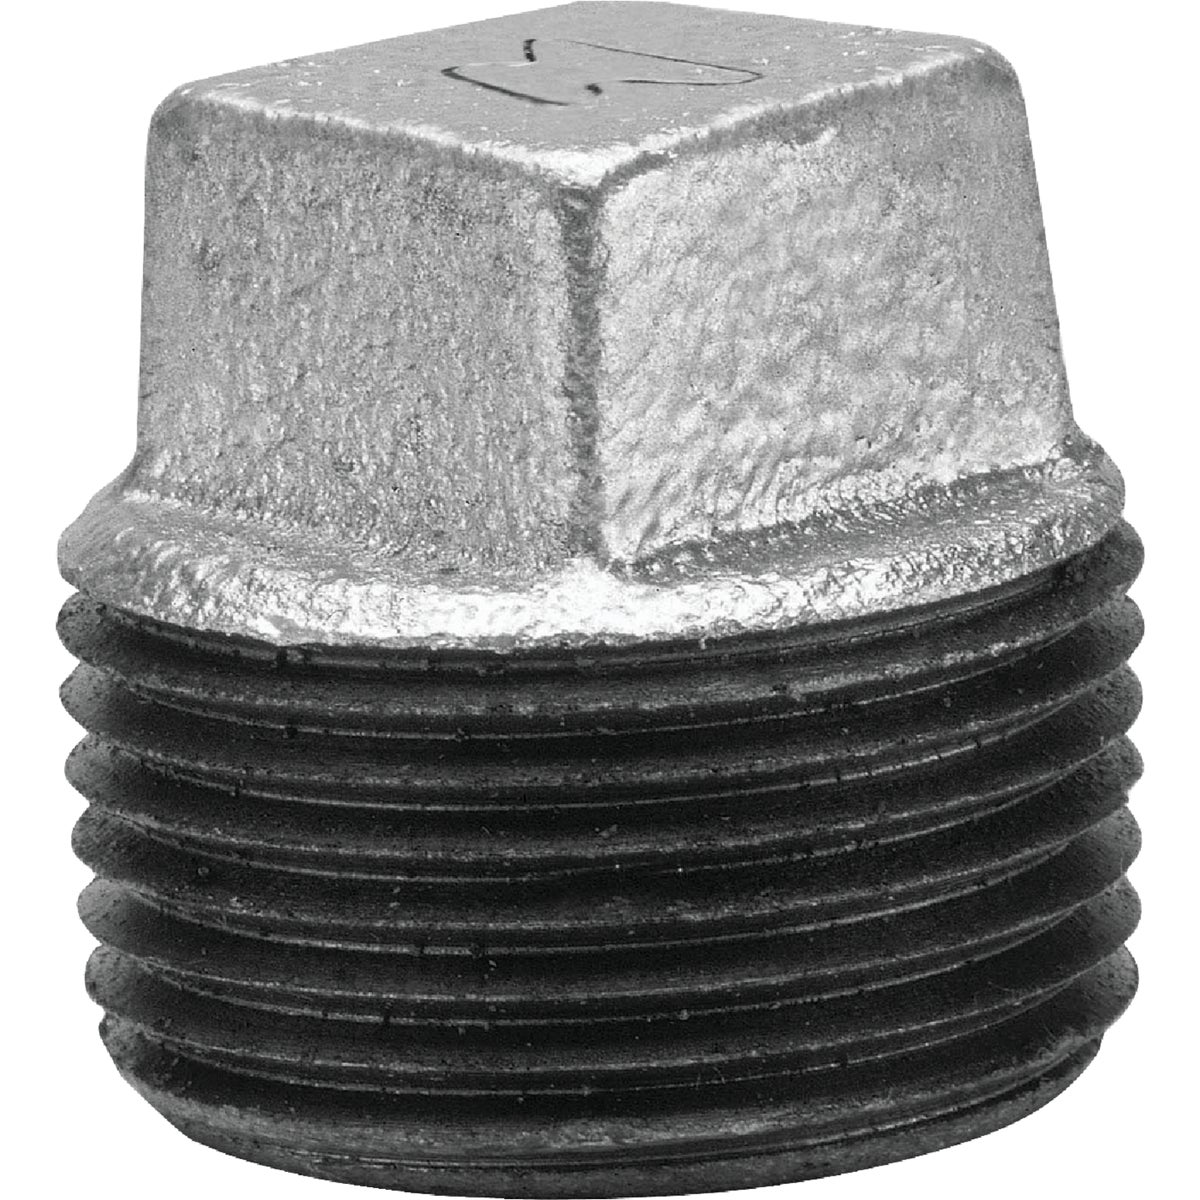 "1-1/4"" GALV SQ PLUG - 8700160008 by Anvil International"